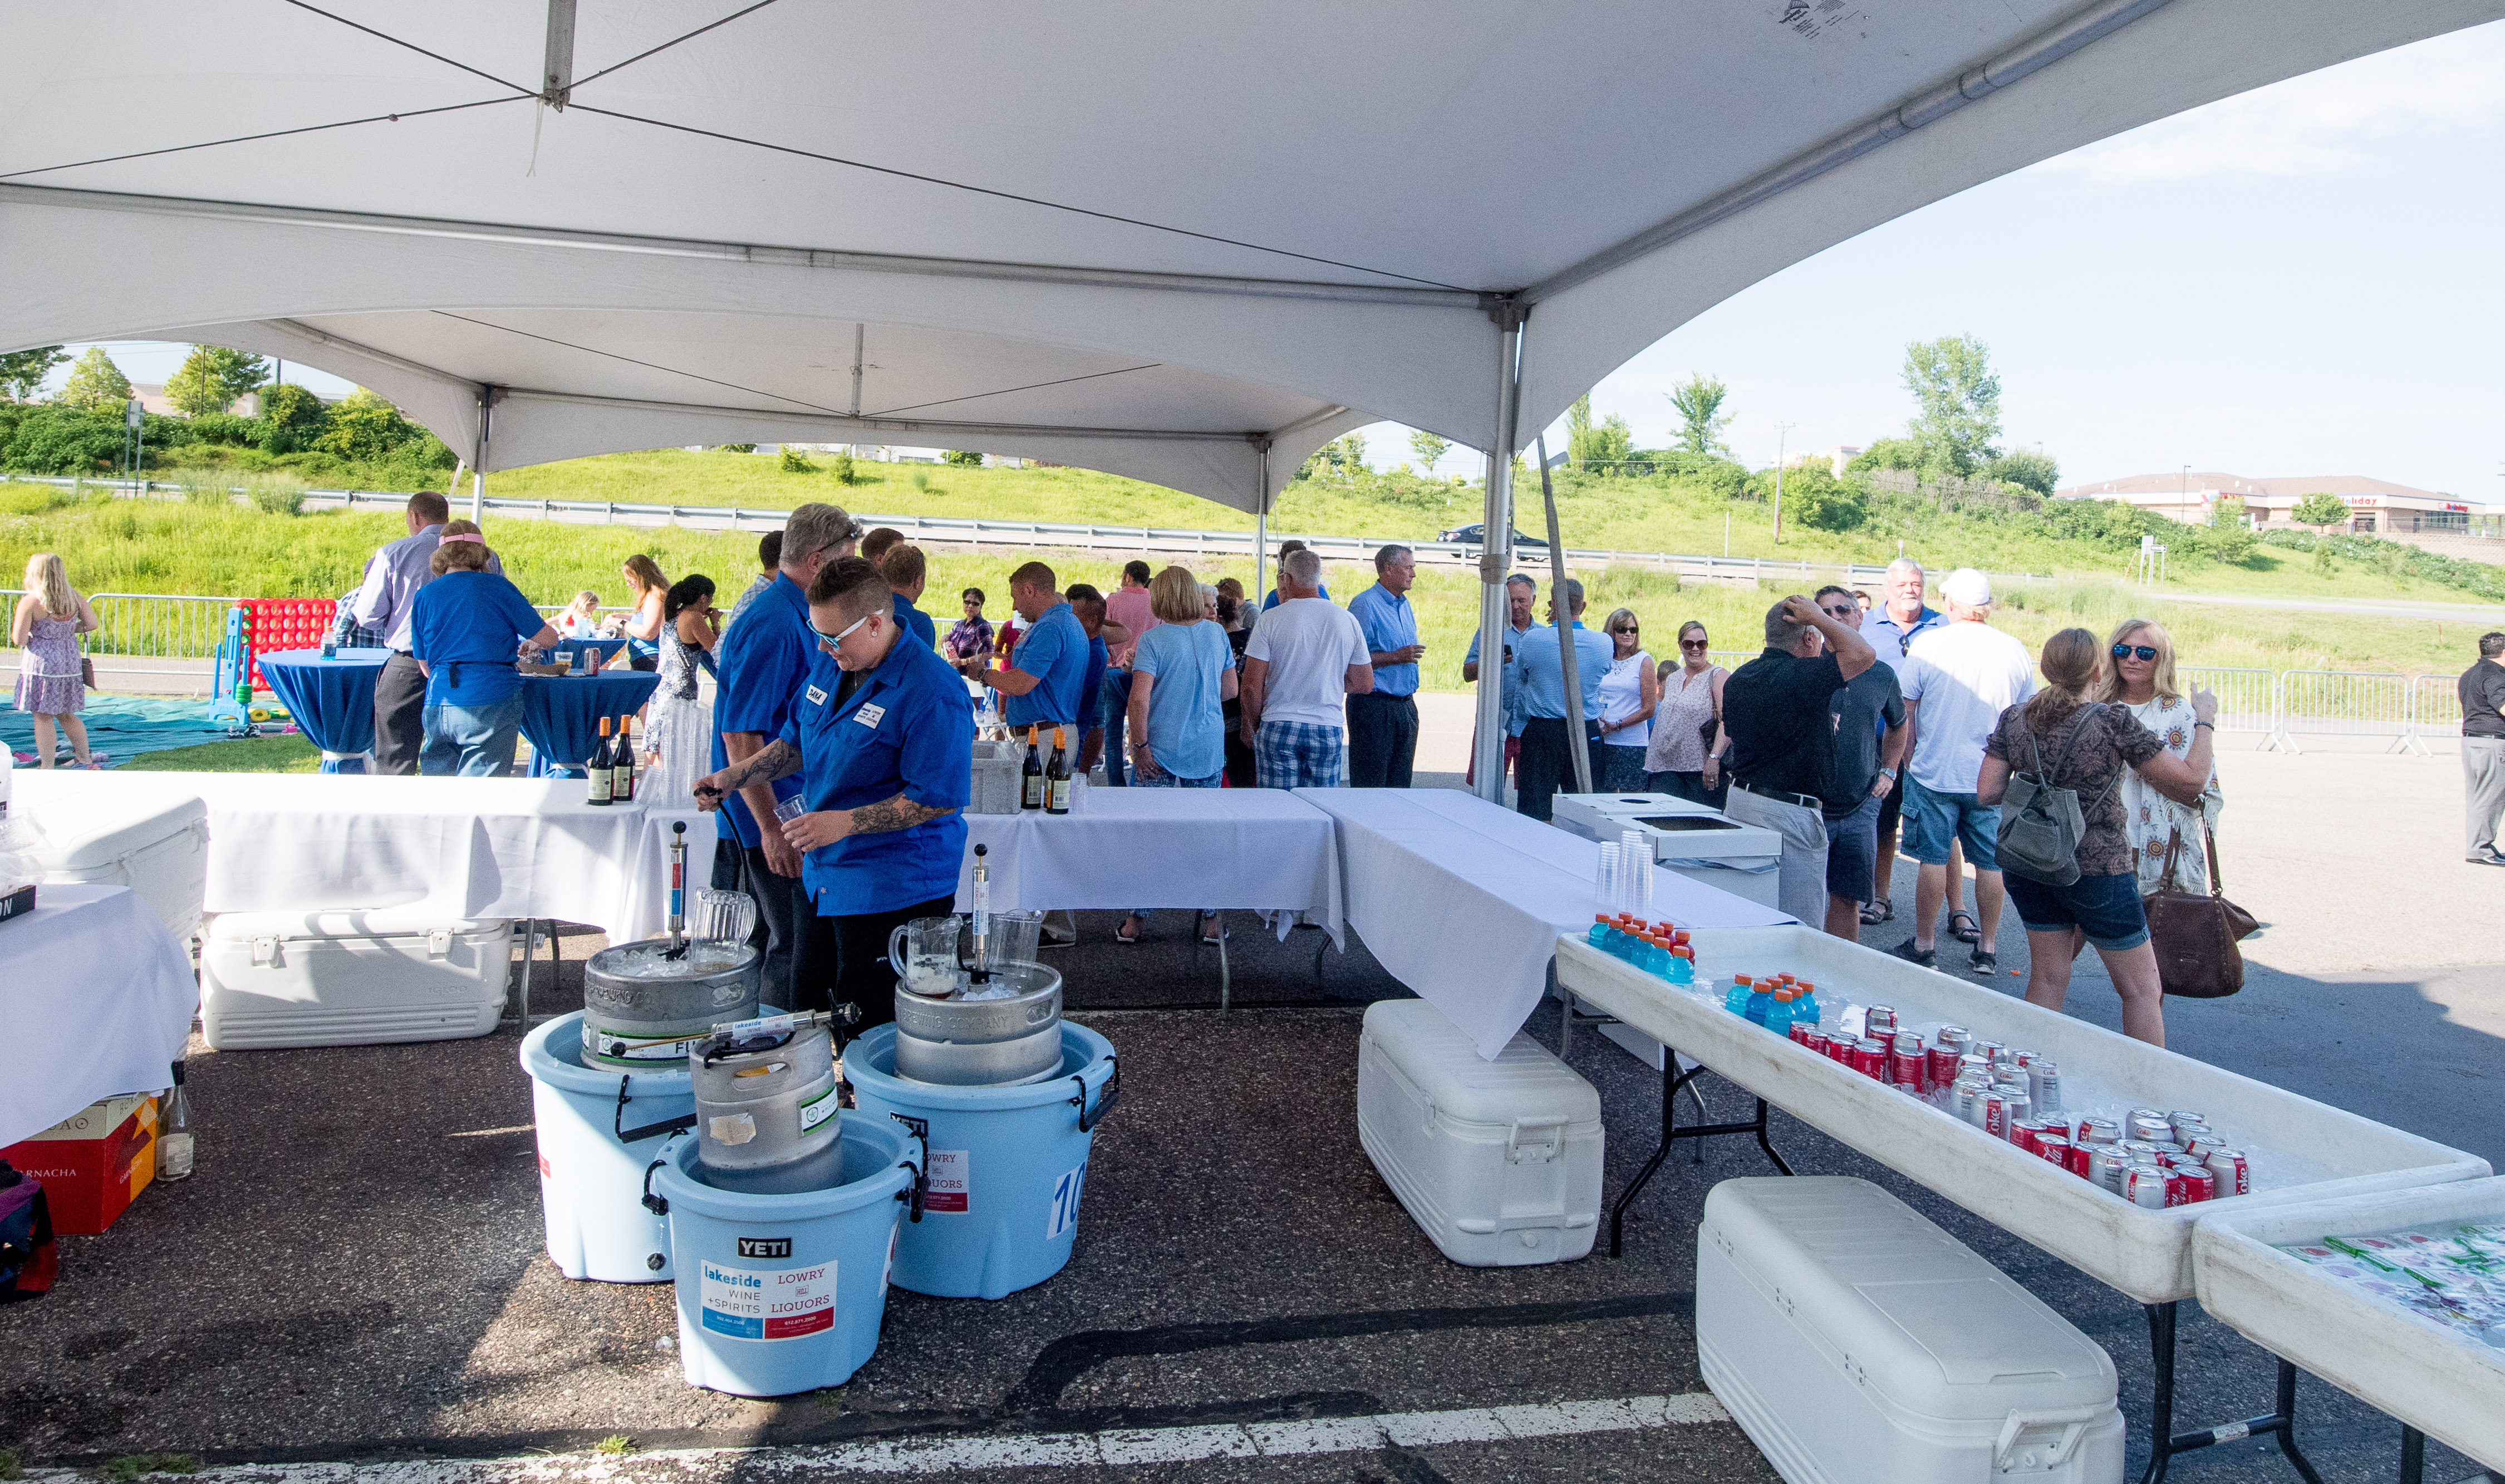 061-Highway 55 Rental-40th Anniversary-Minneapolis event photographers-www.jcoxphotography.com-July 31, 2019